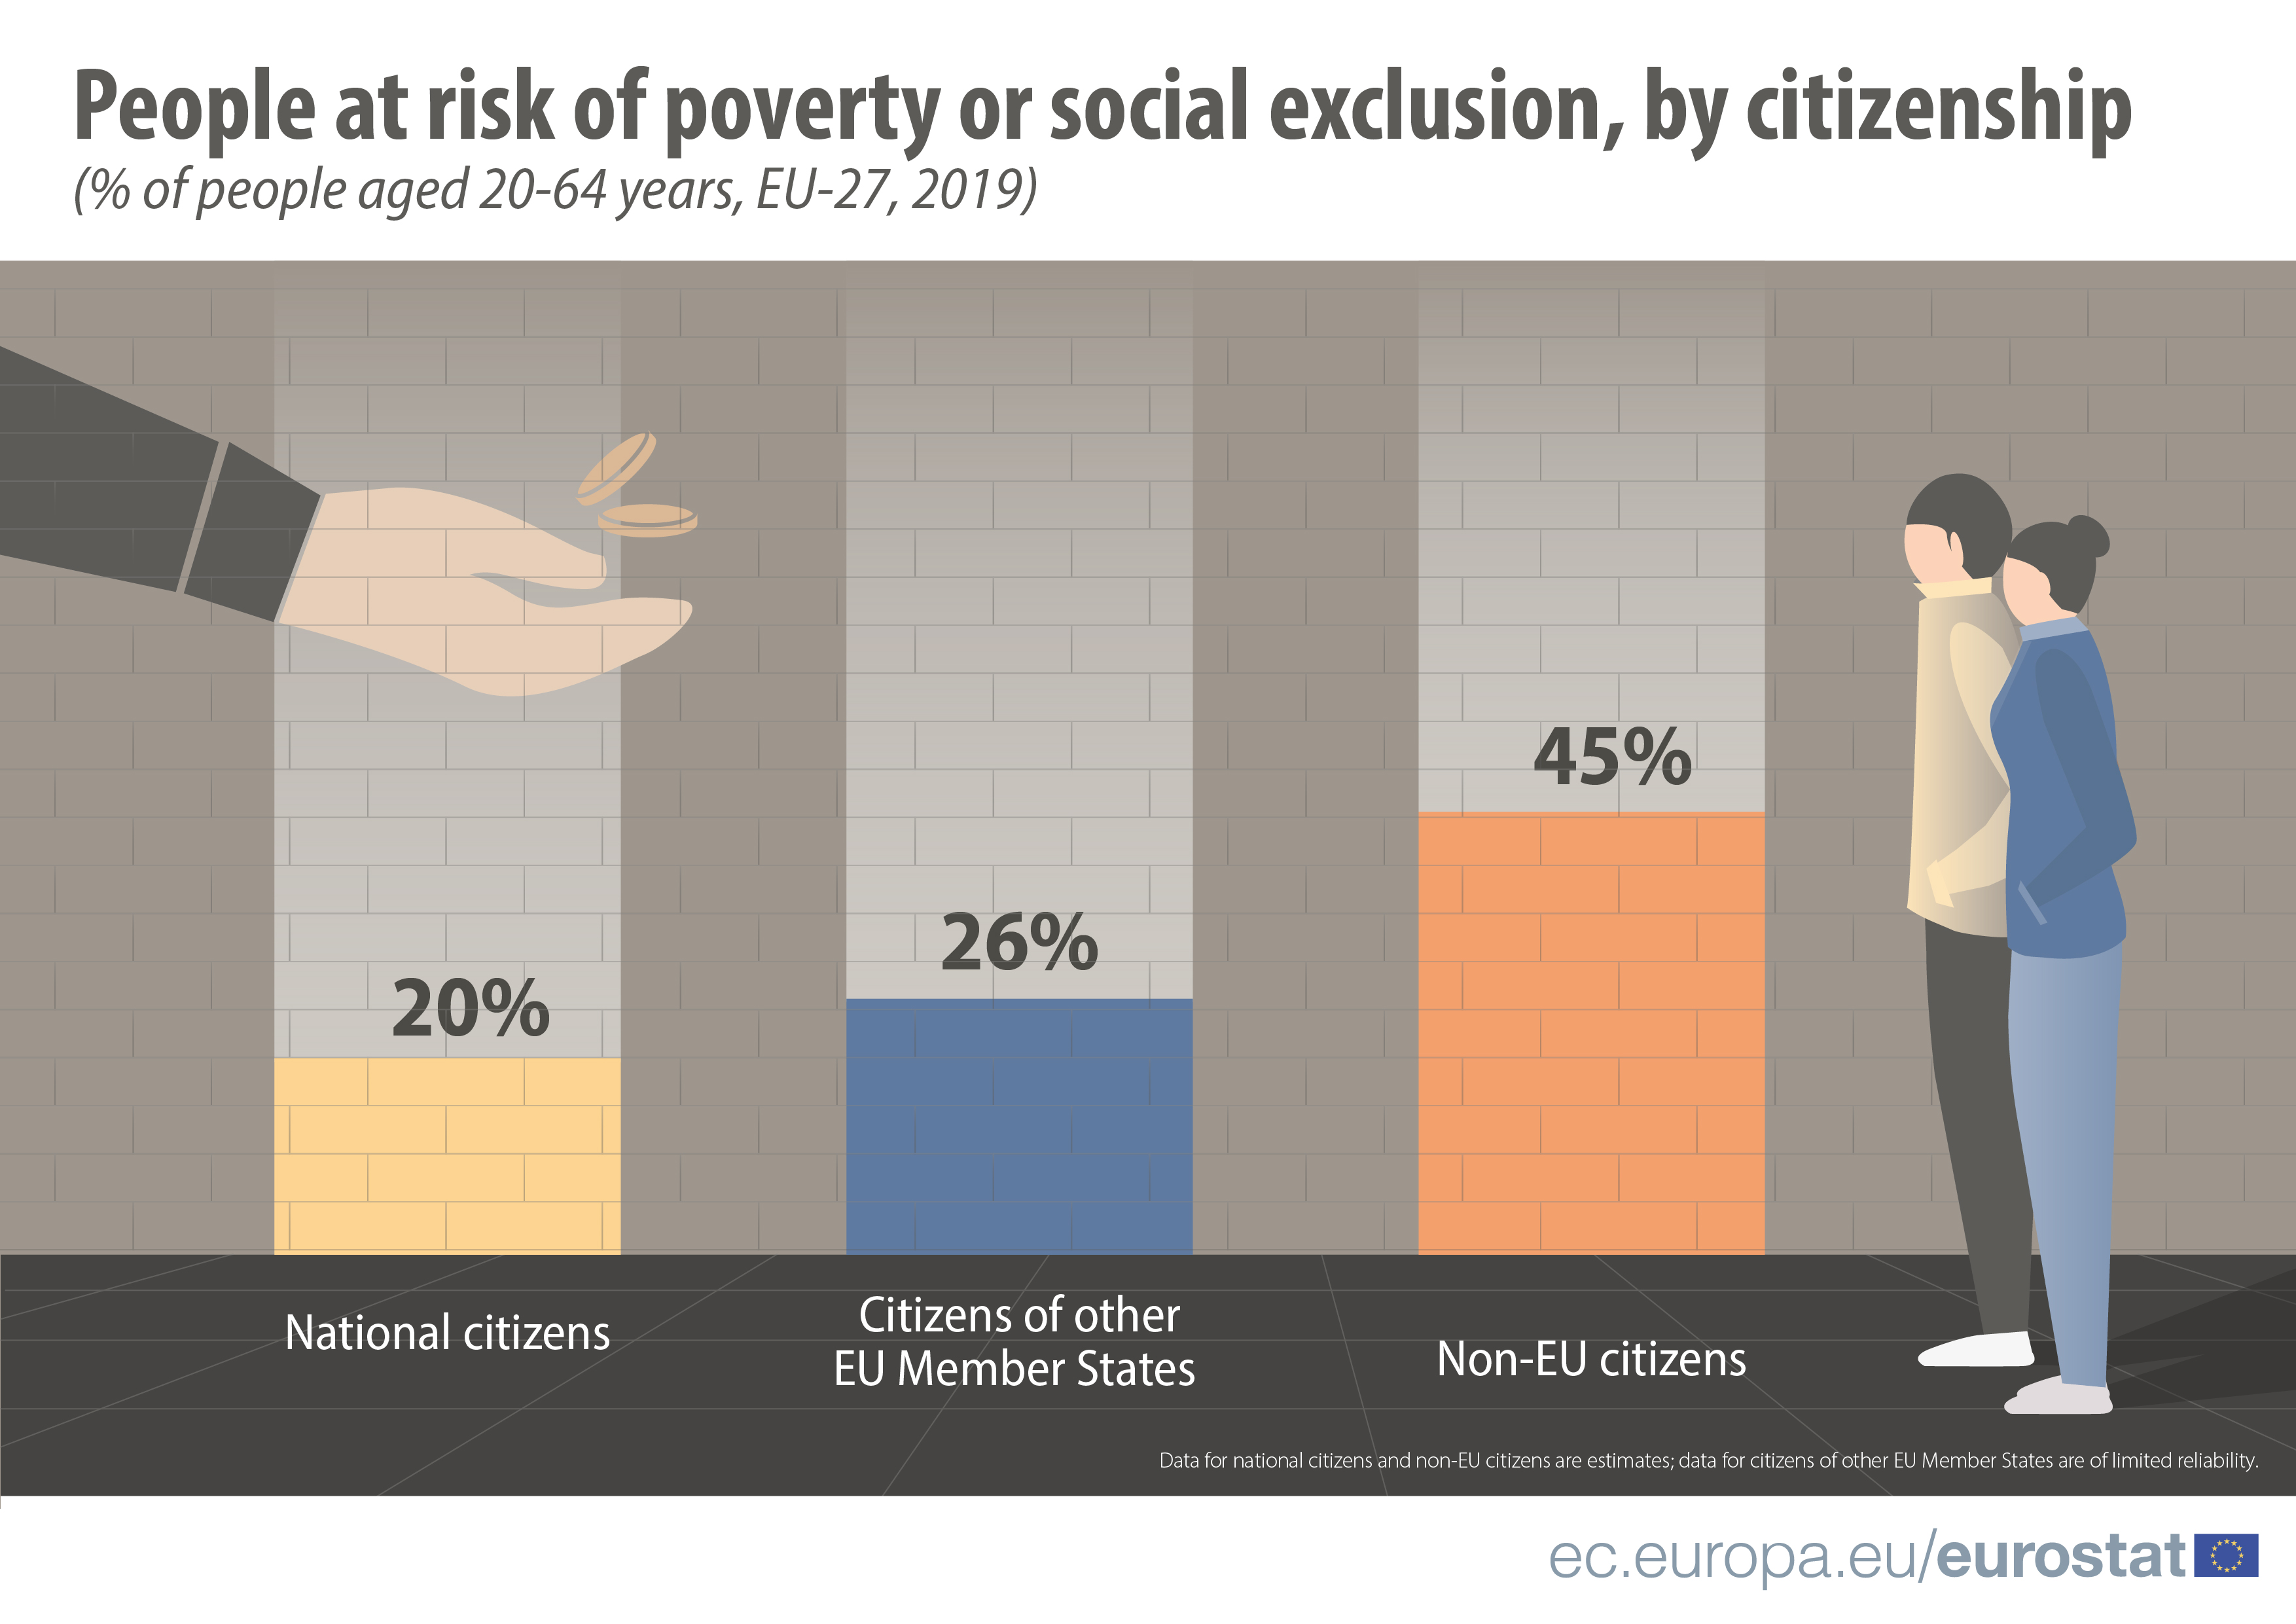 Migrant integration and risk of poverty or social exclusion in the EU